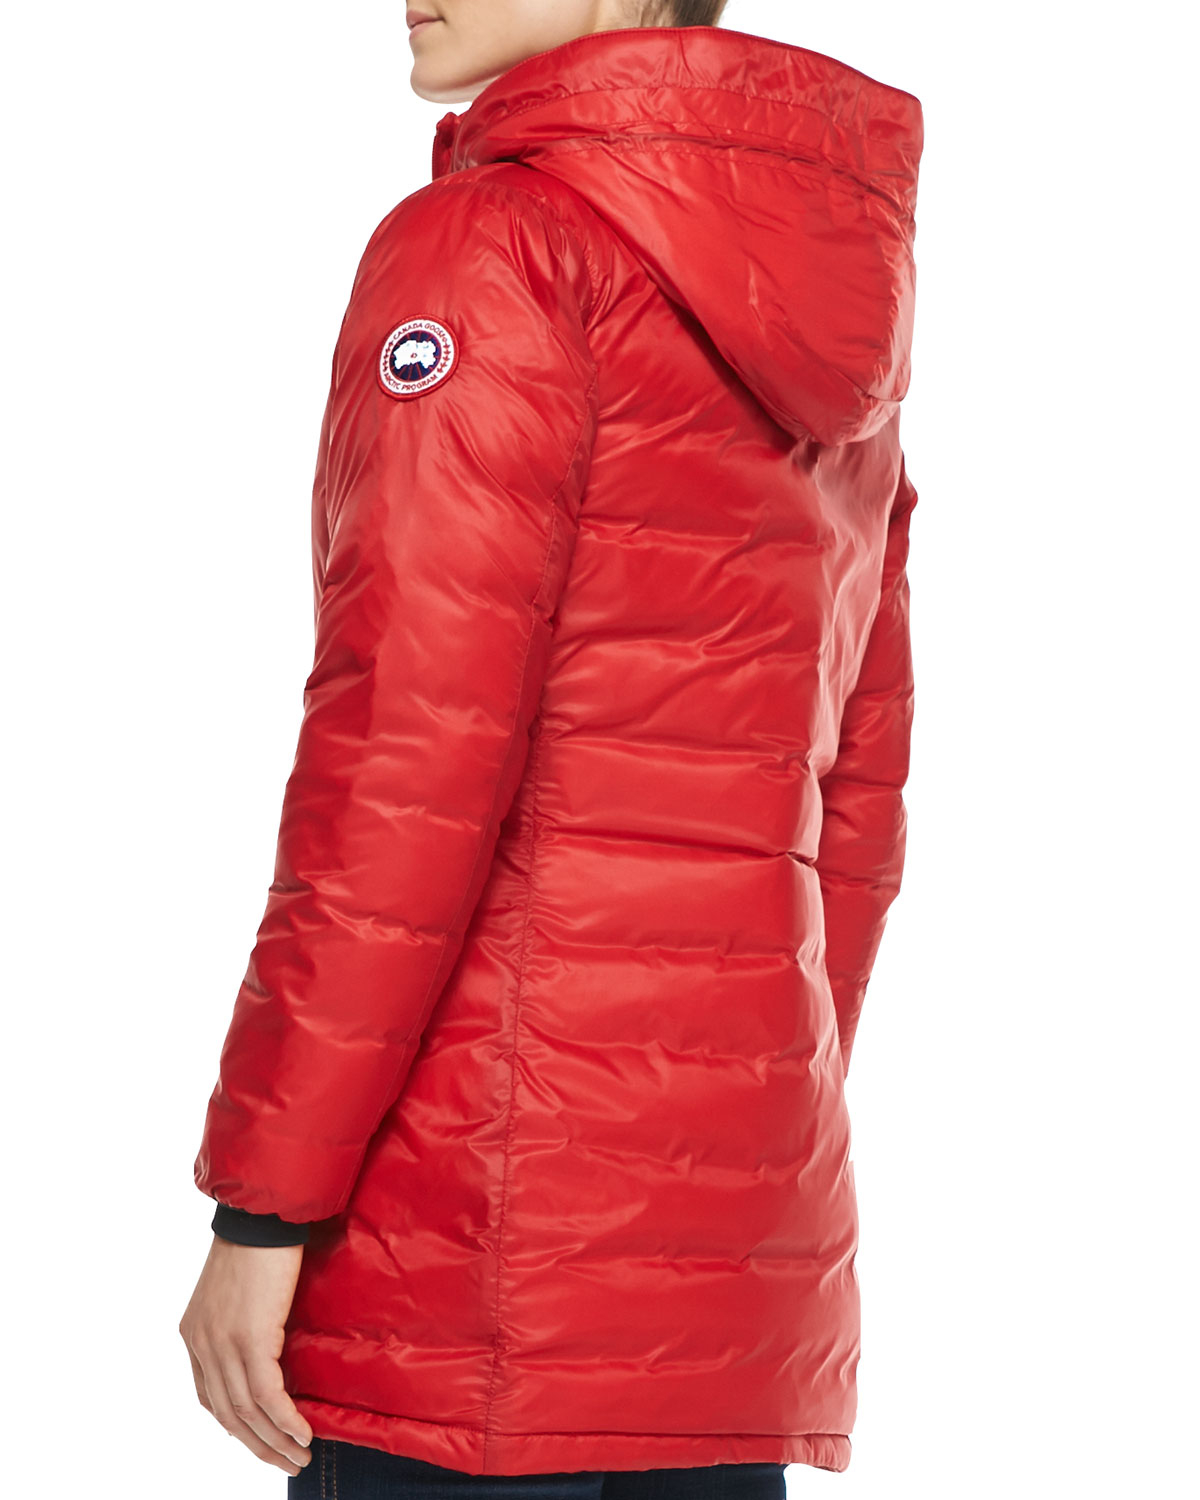 Lyst - Canada Goose Camp Hooded Mid-Length Puffer Coat in Re ...